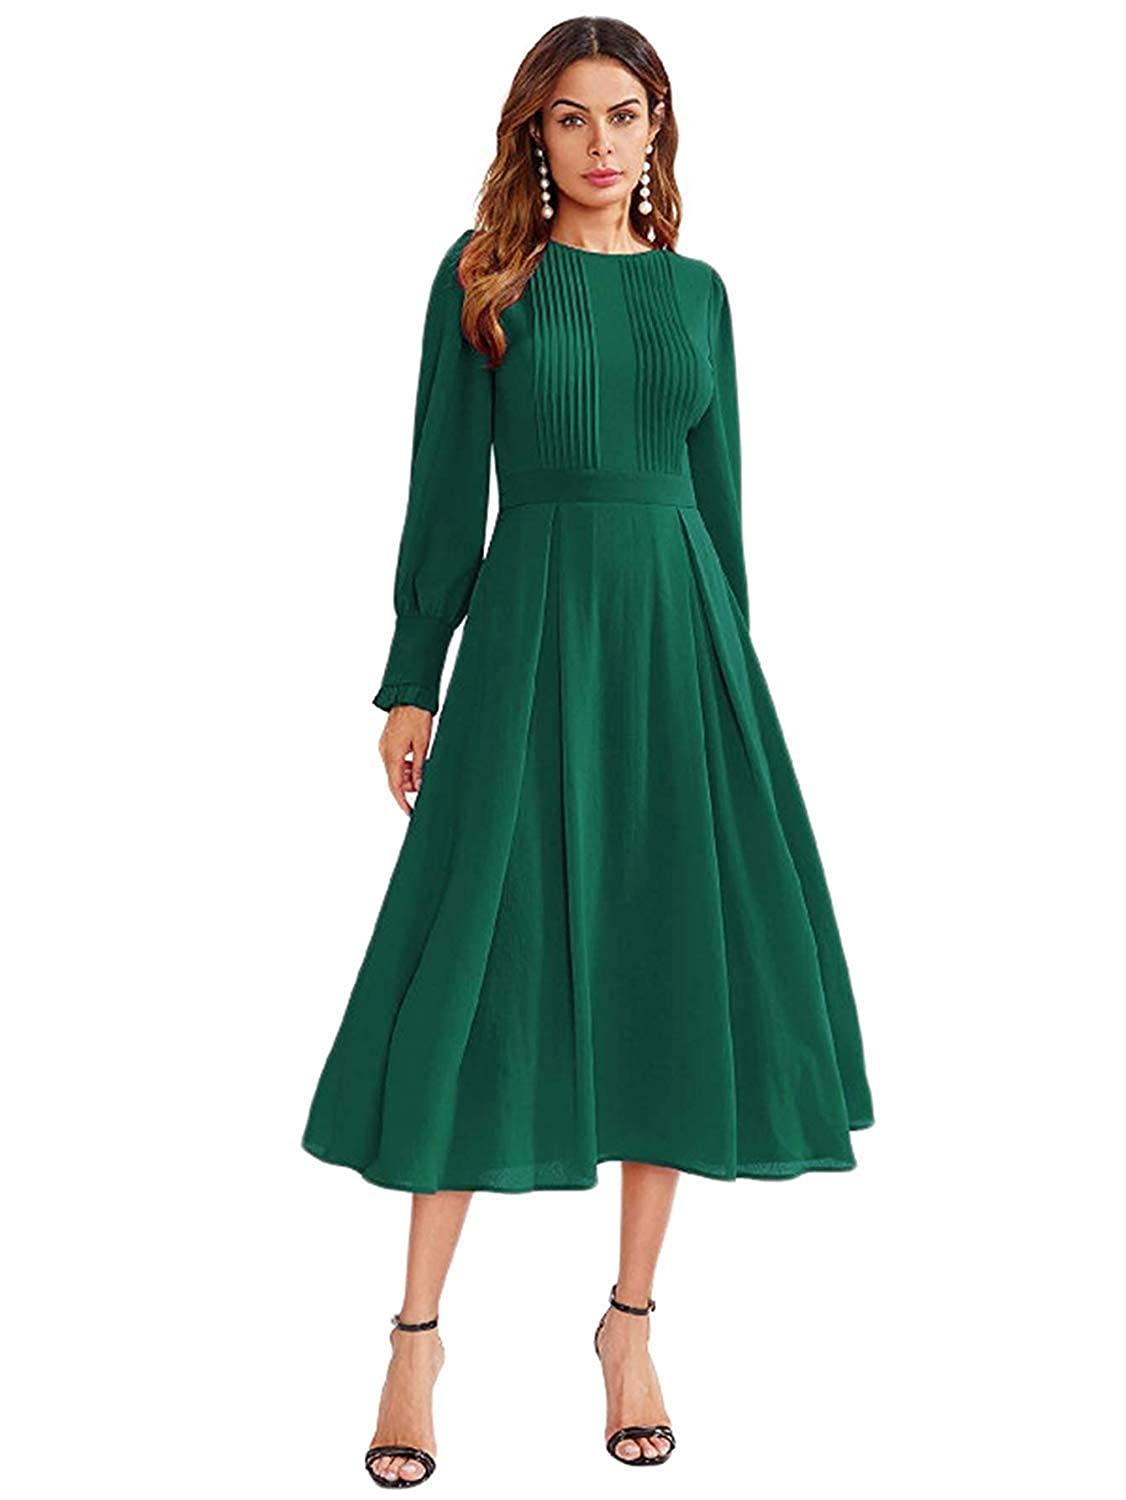 515c573a27c8 Milumia Women s Elegant Frilled Long Sleeve Pleated Fit   Flare Dress at  Amazon Women s Clothing store